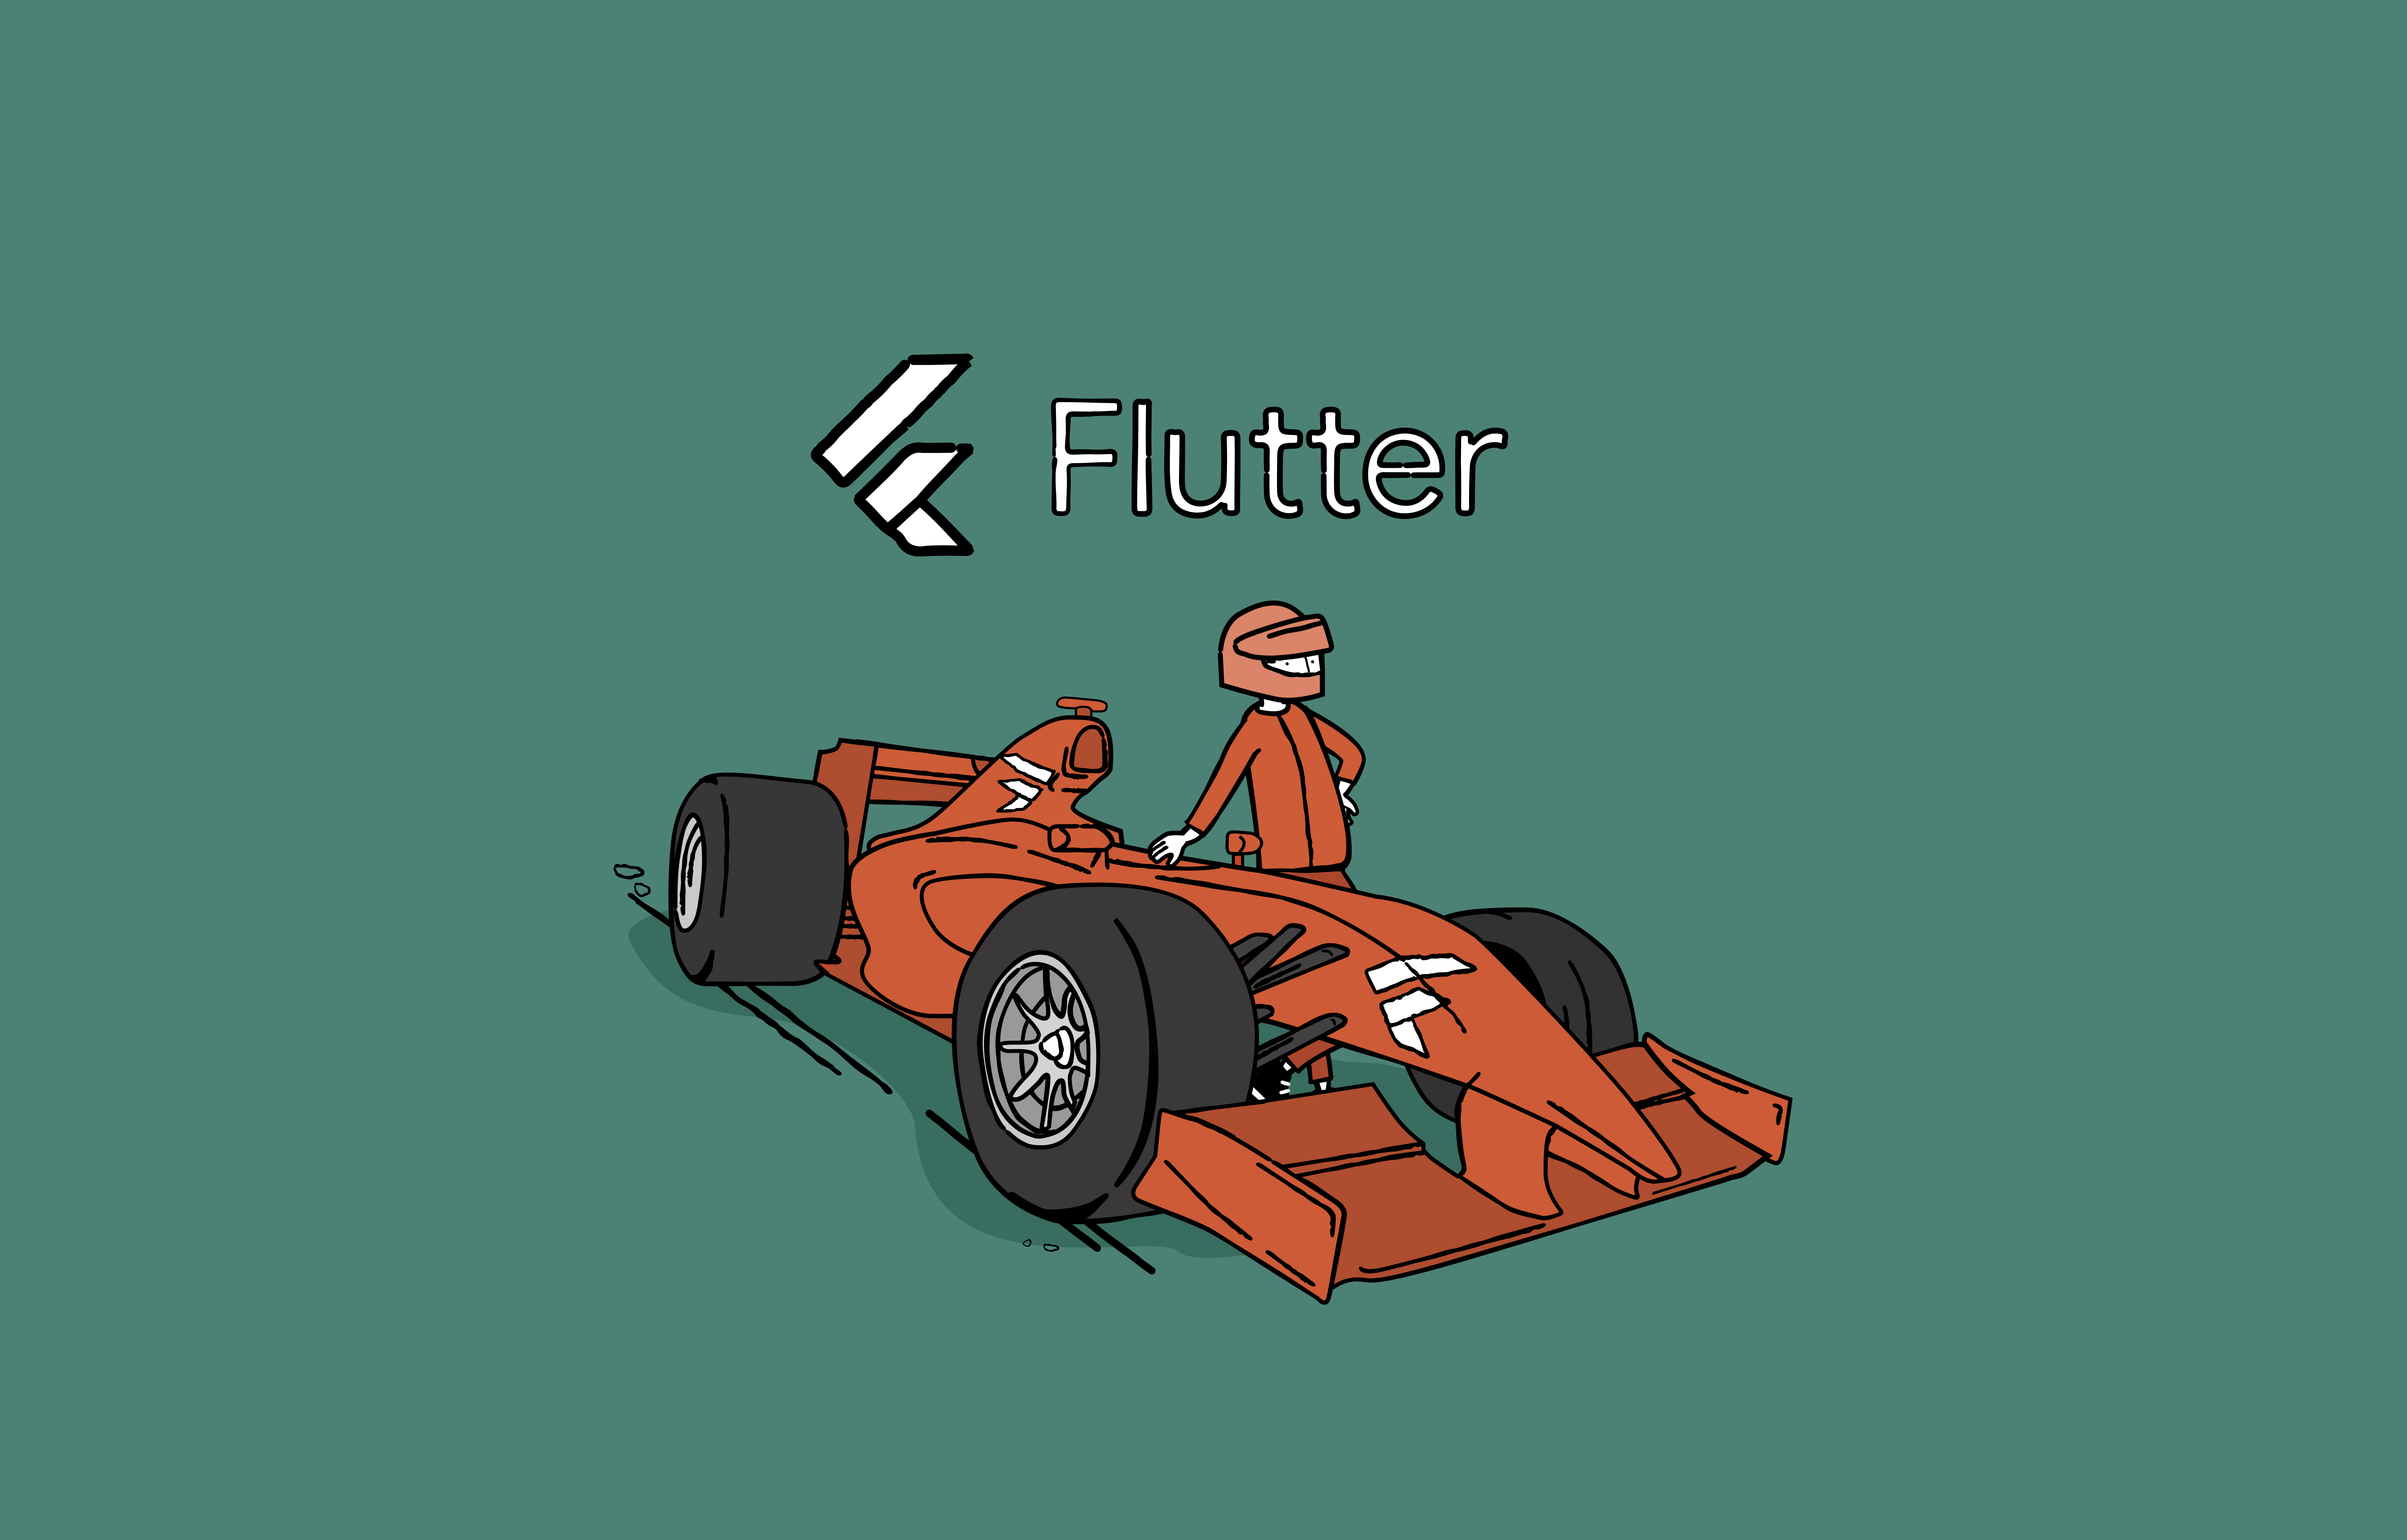 Flutter is like the best F1 car on the market.